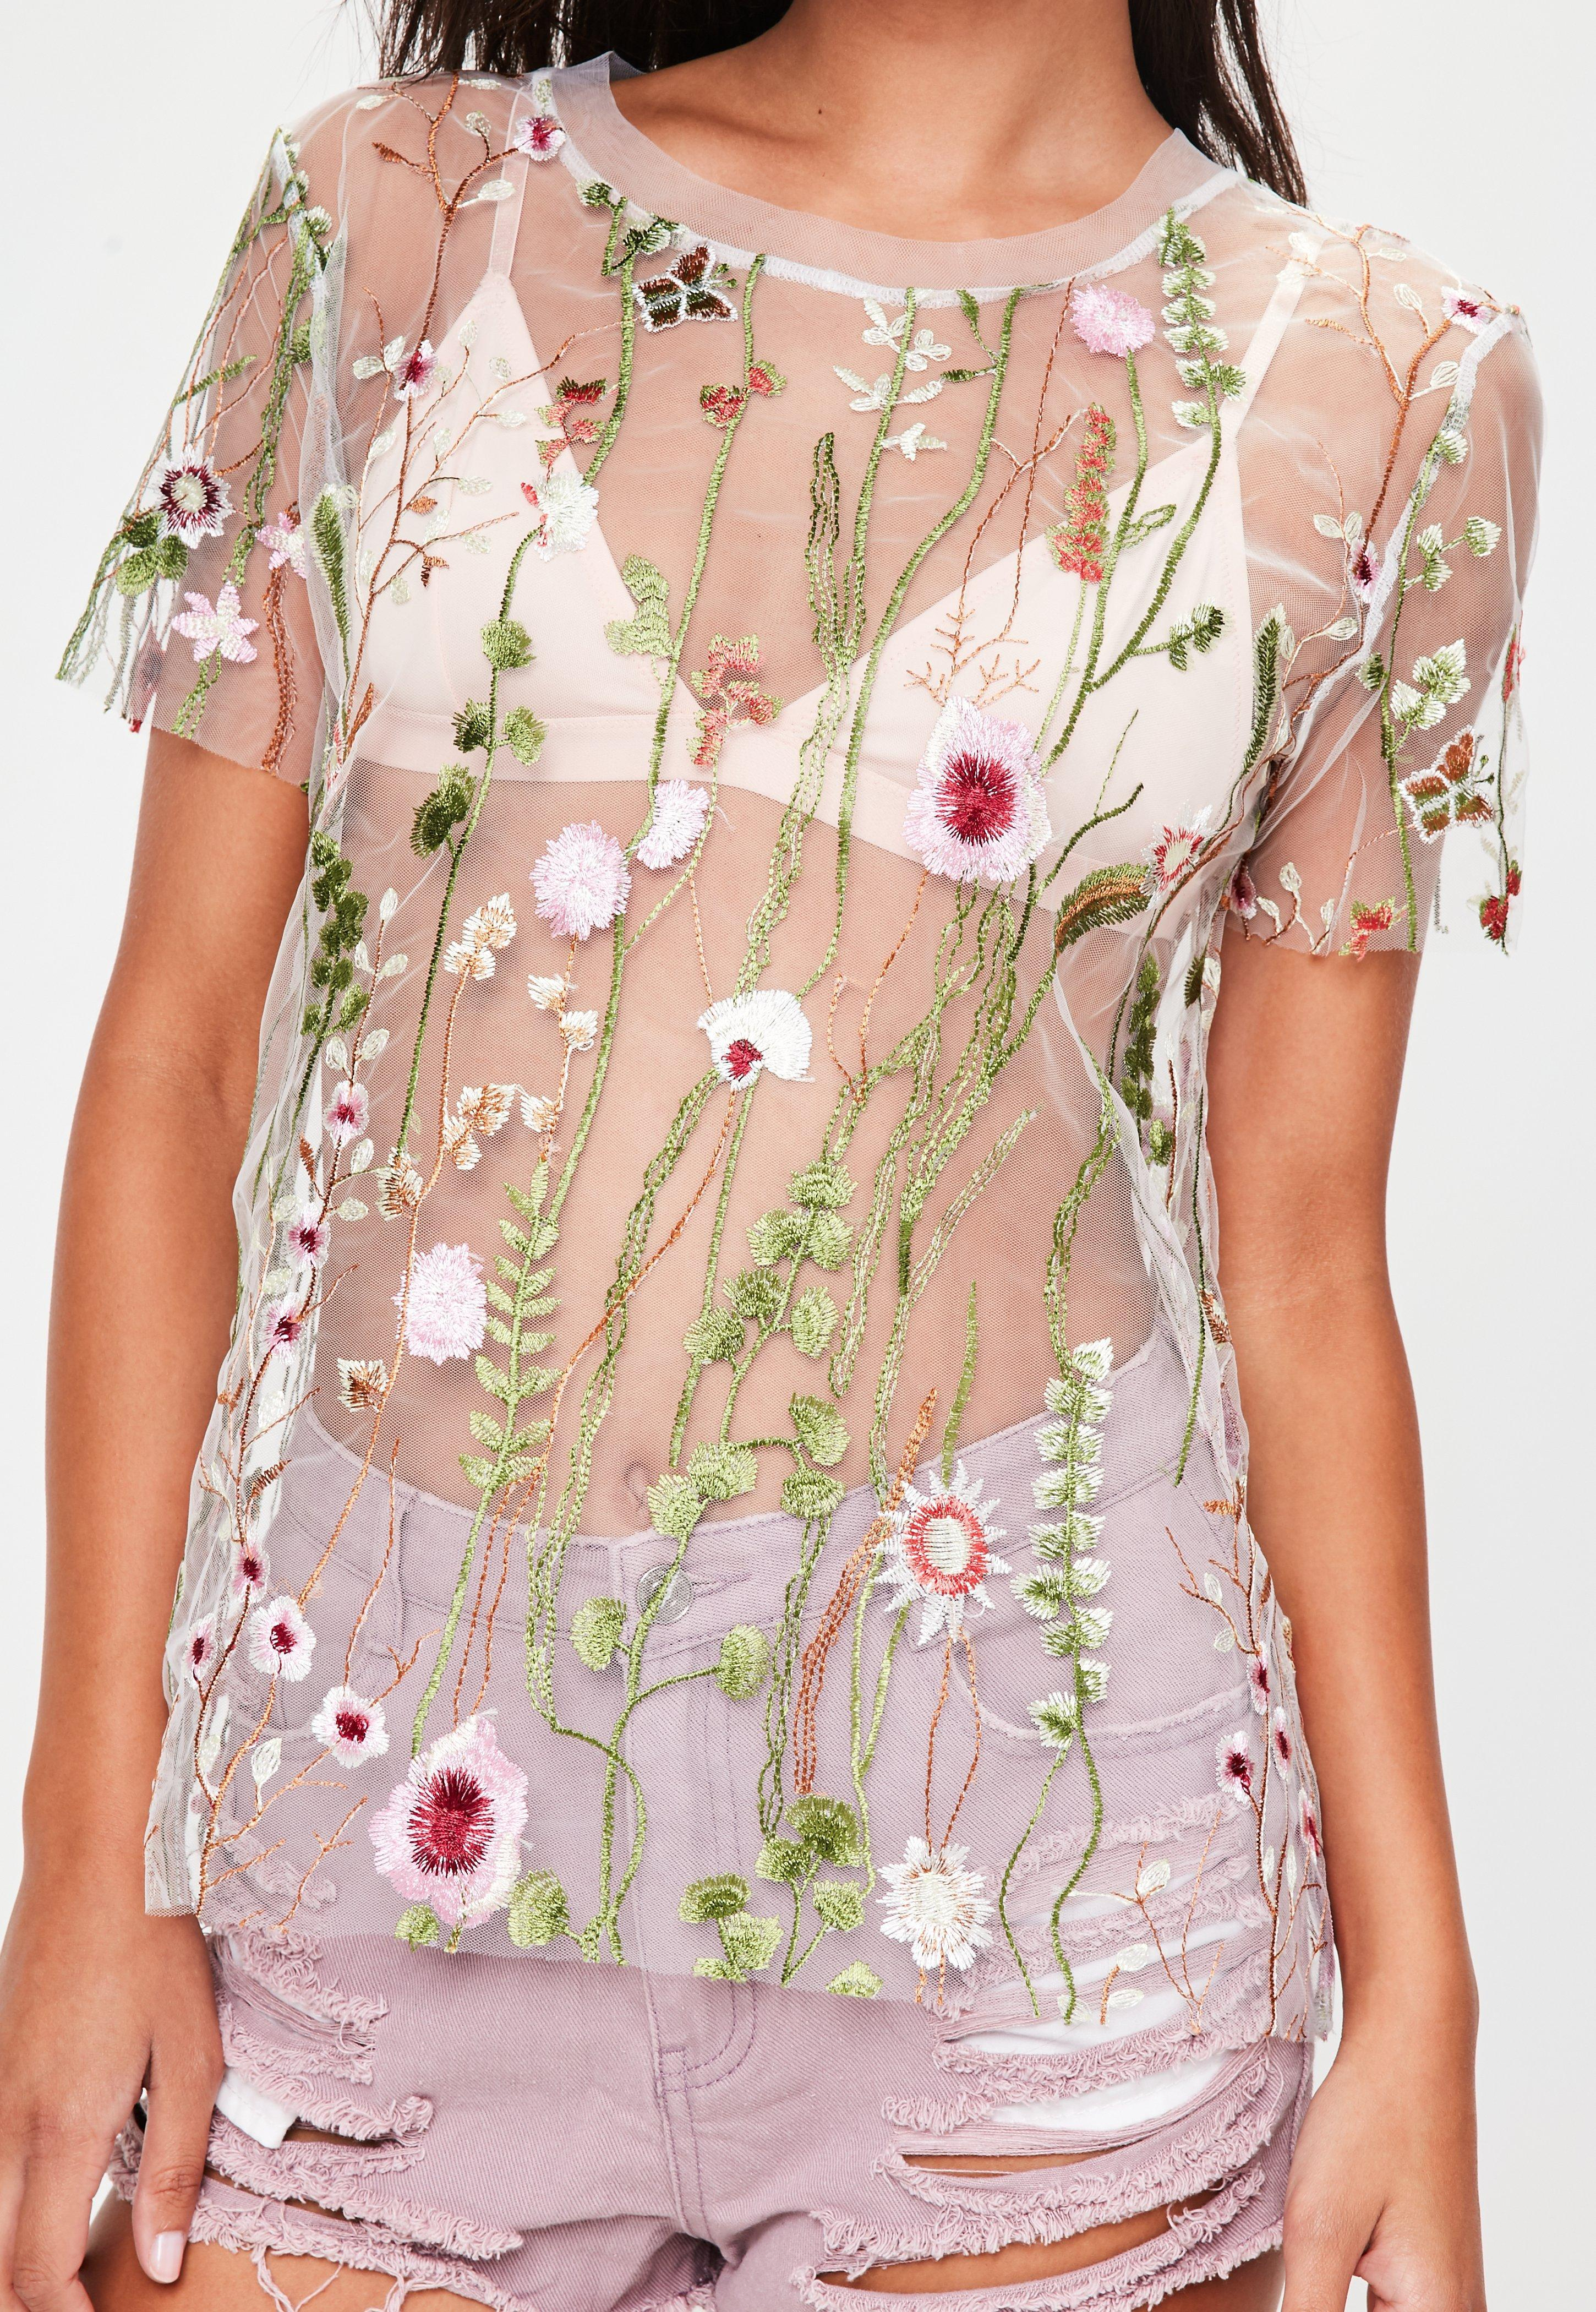 fcbb353f172d3 Lyst - Missguided White Mesh Floral Embroidered Oversized T-shirt in ...